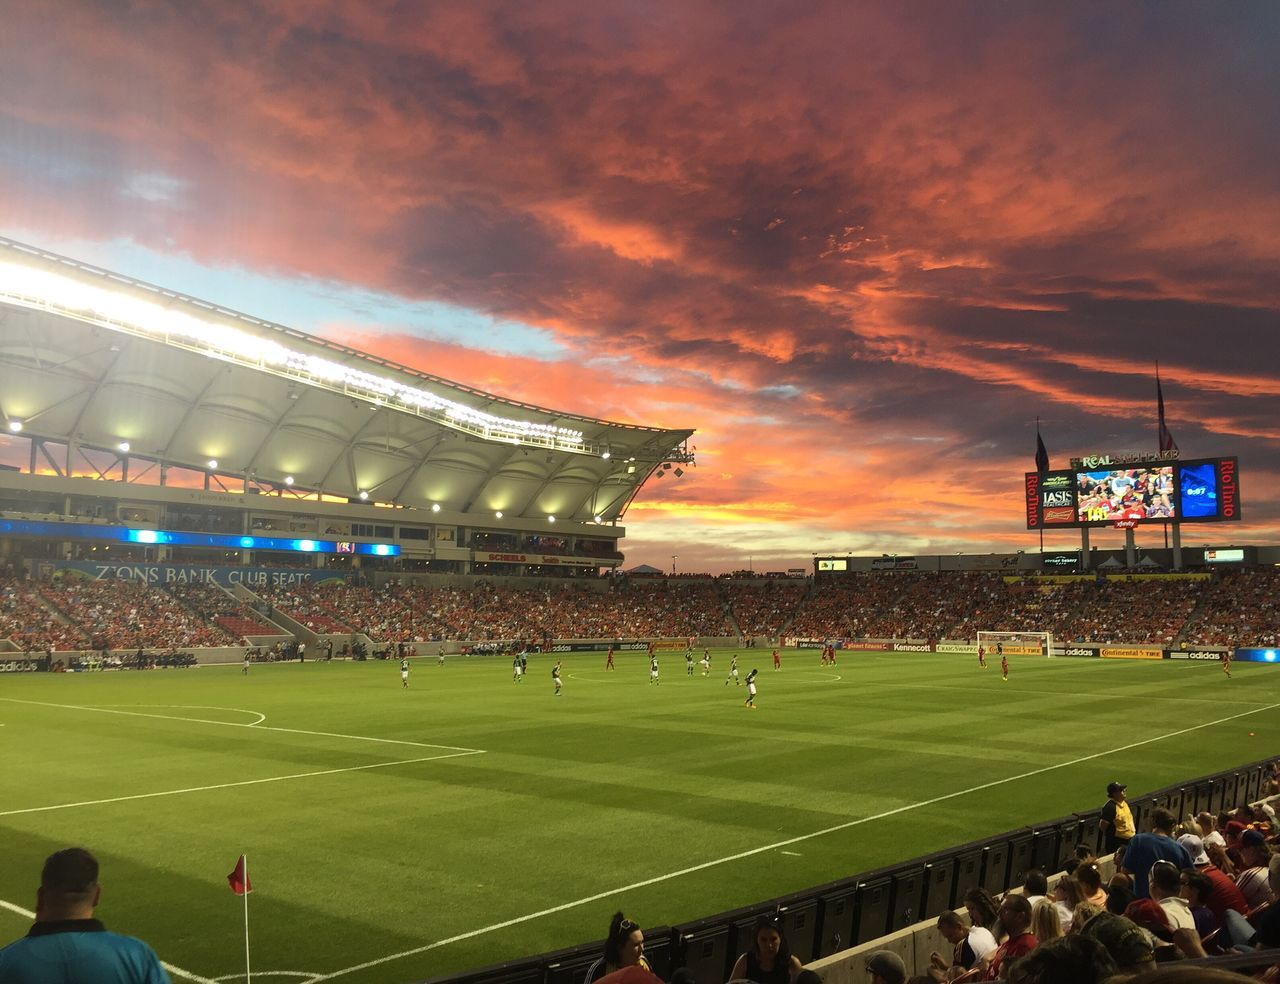 Sunset at Soccer stadium Soccer Field Stadium Sport Sky Cloud Sunset First Eyeem Photo